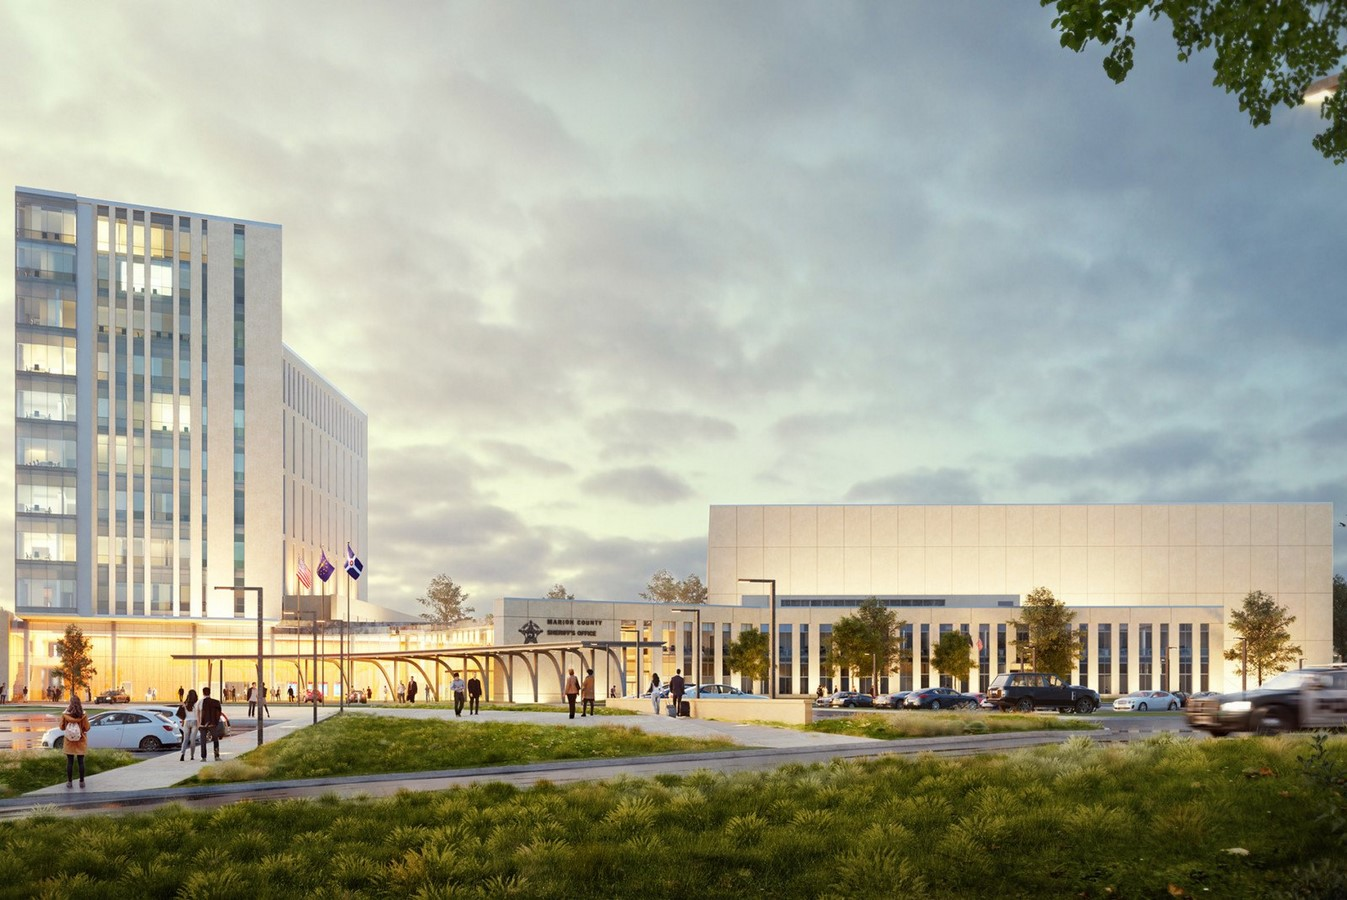 Architects in Fort Wayne - Top 20 Architects in Fort Wayne - Sheet8